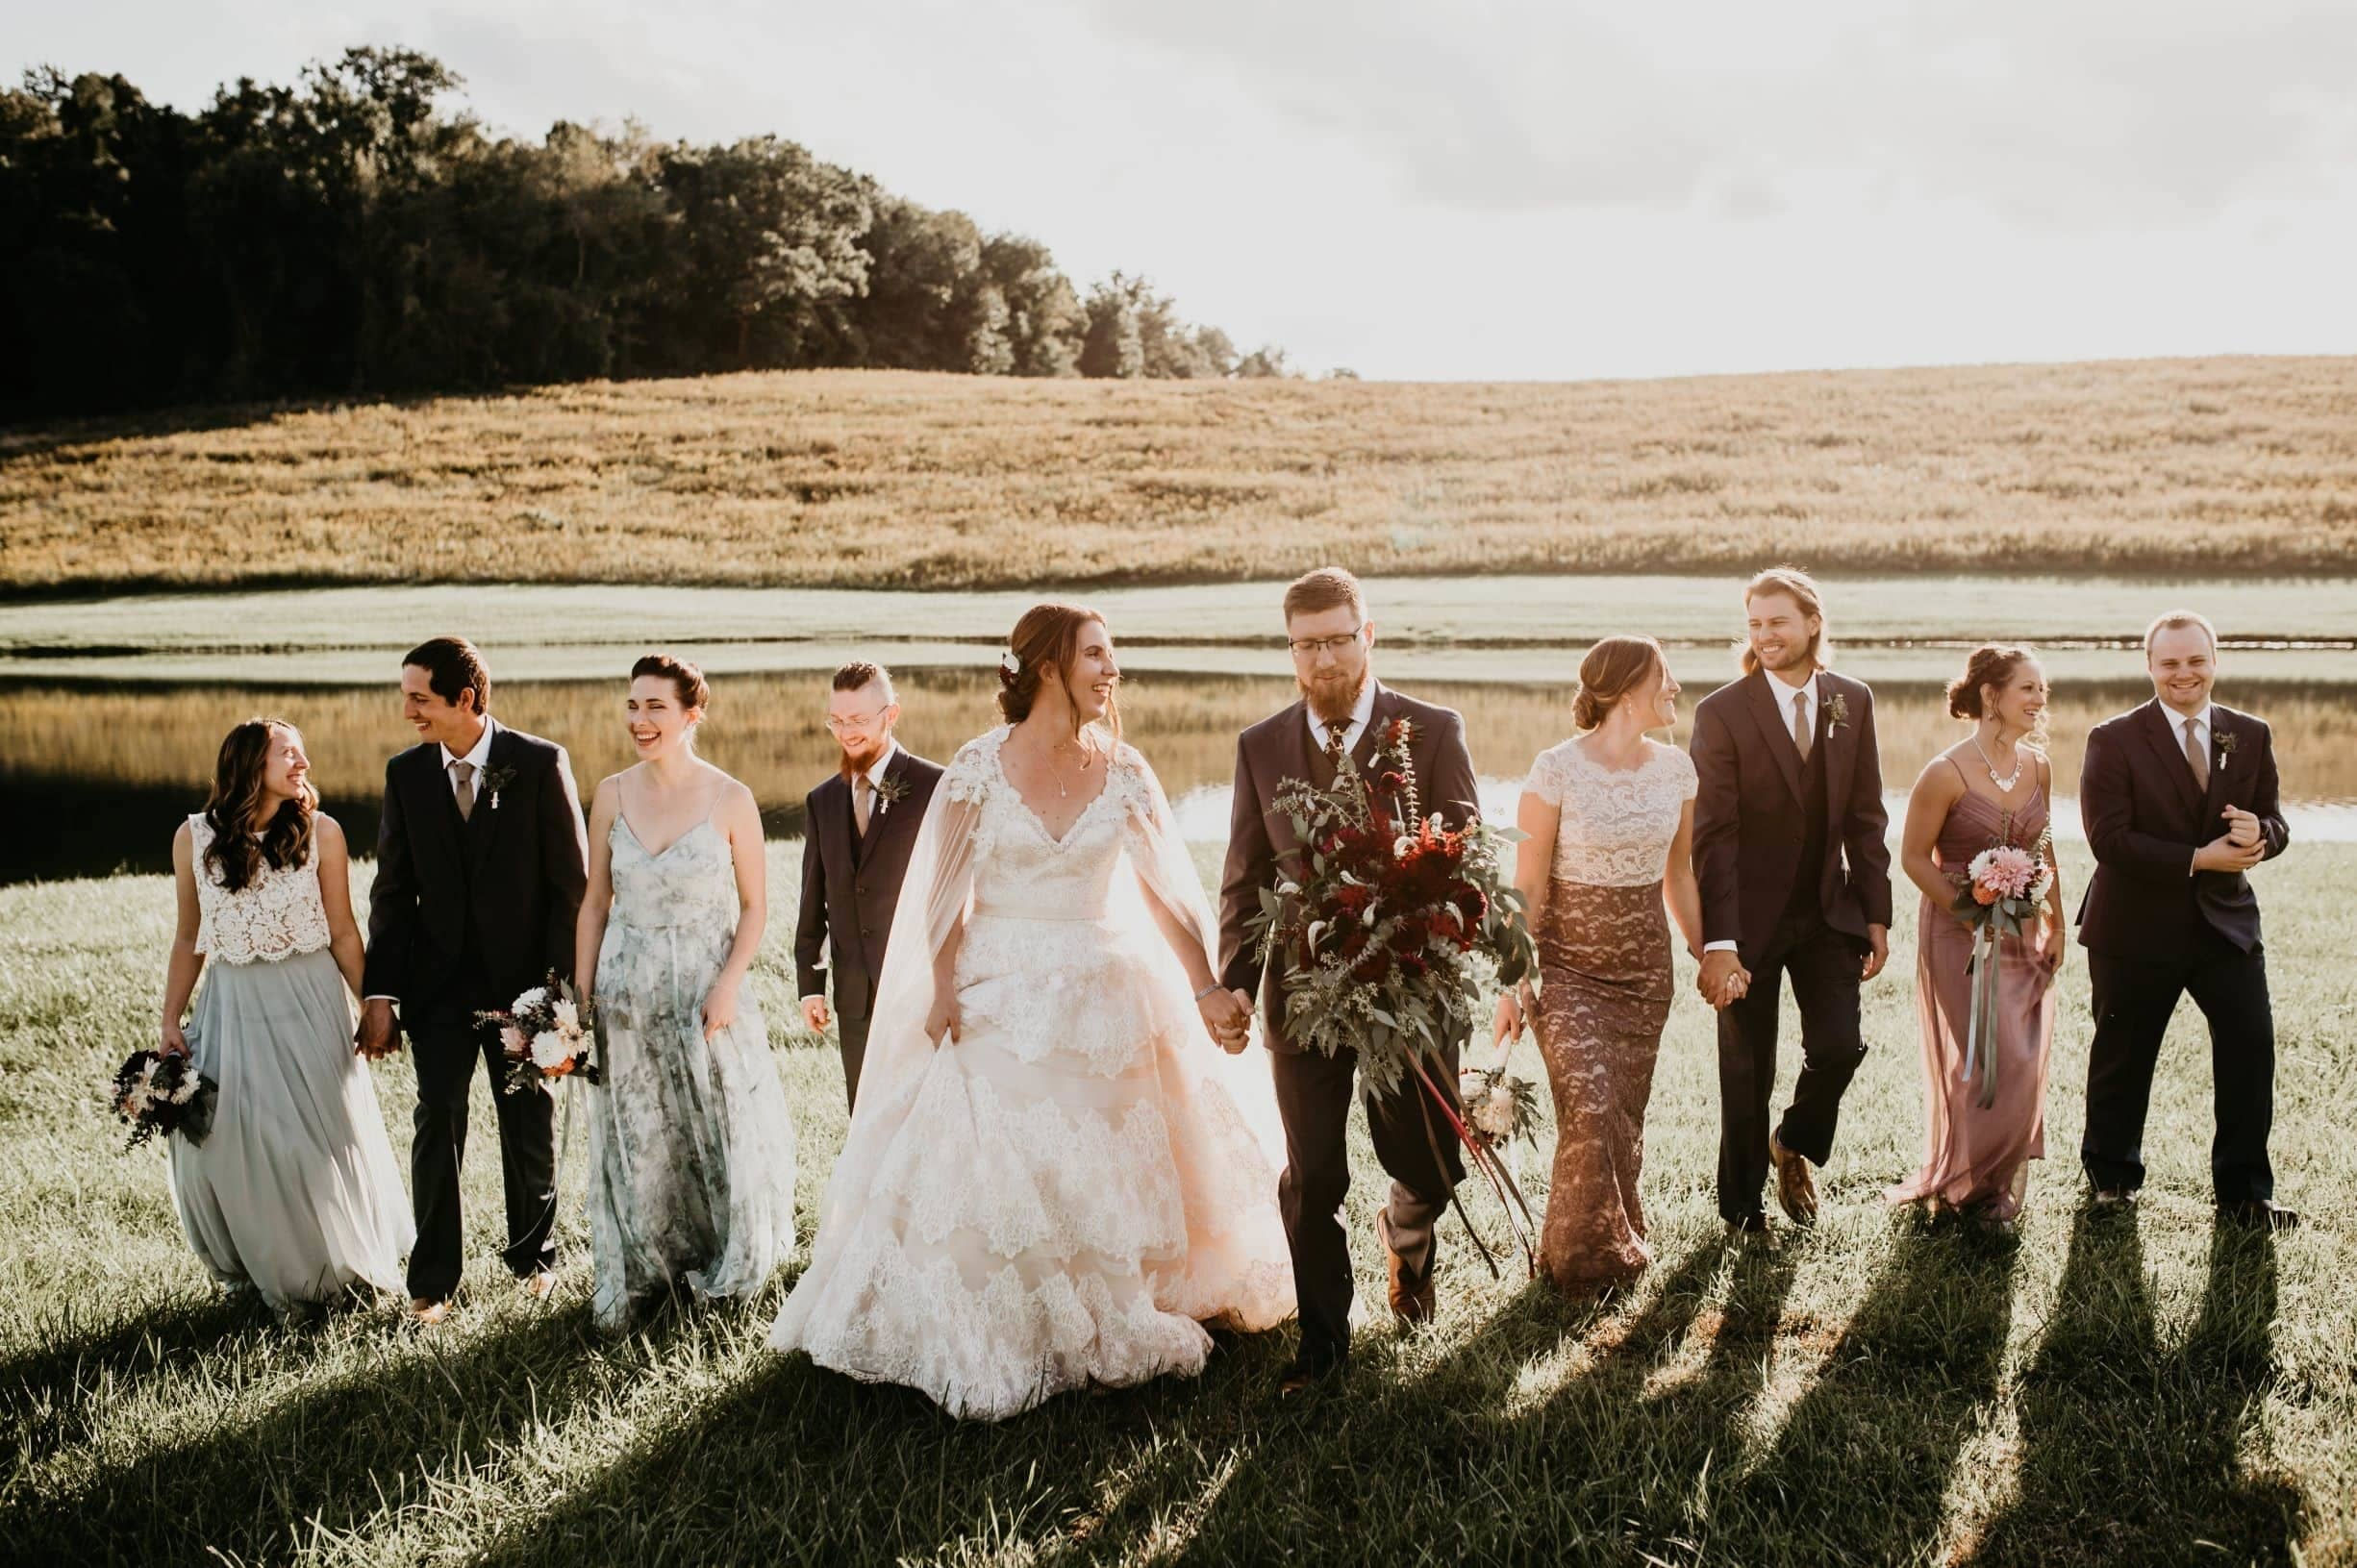 em and tyler bridal party walking.jpg